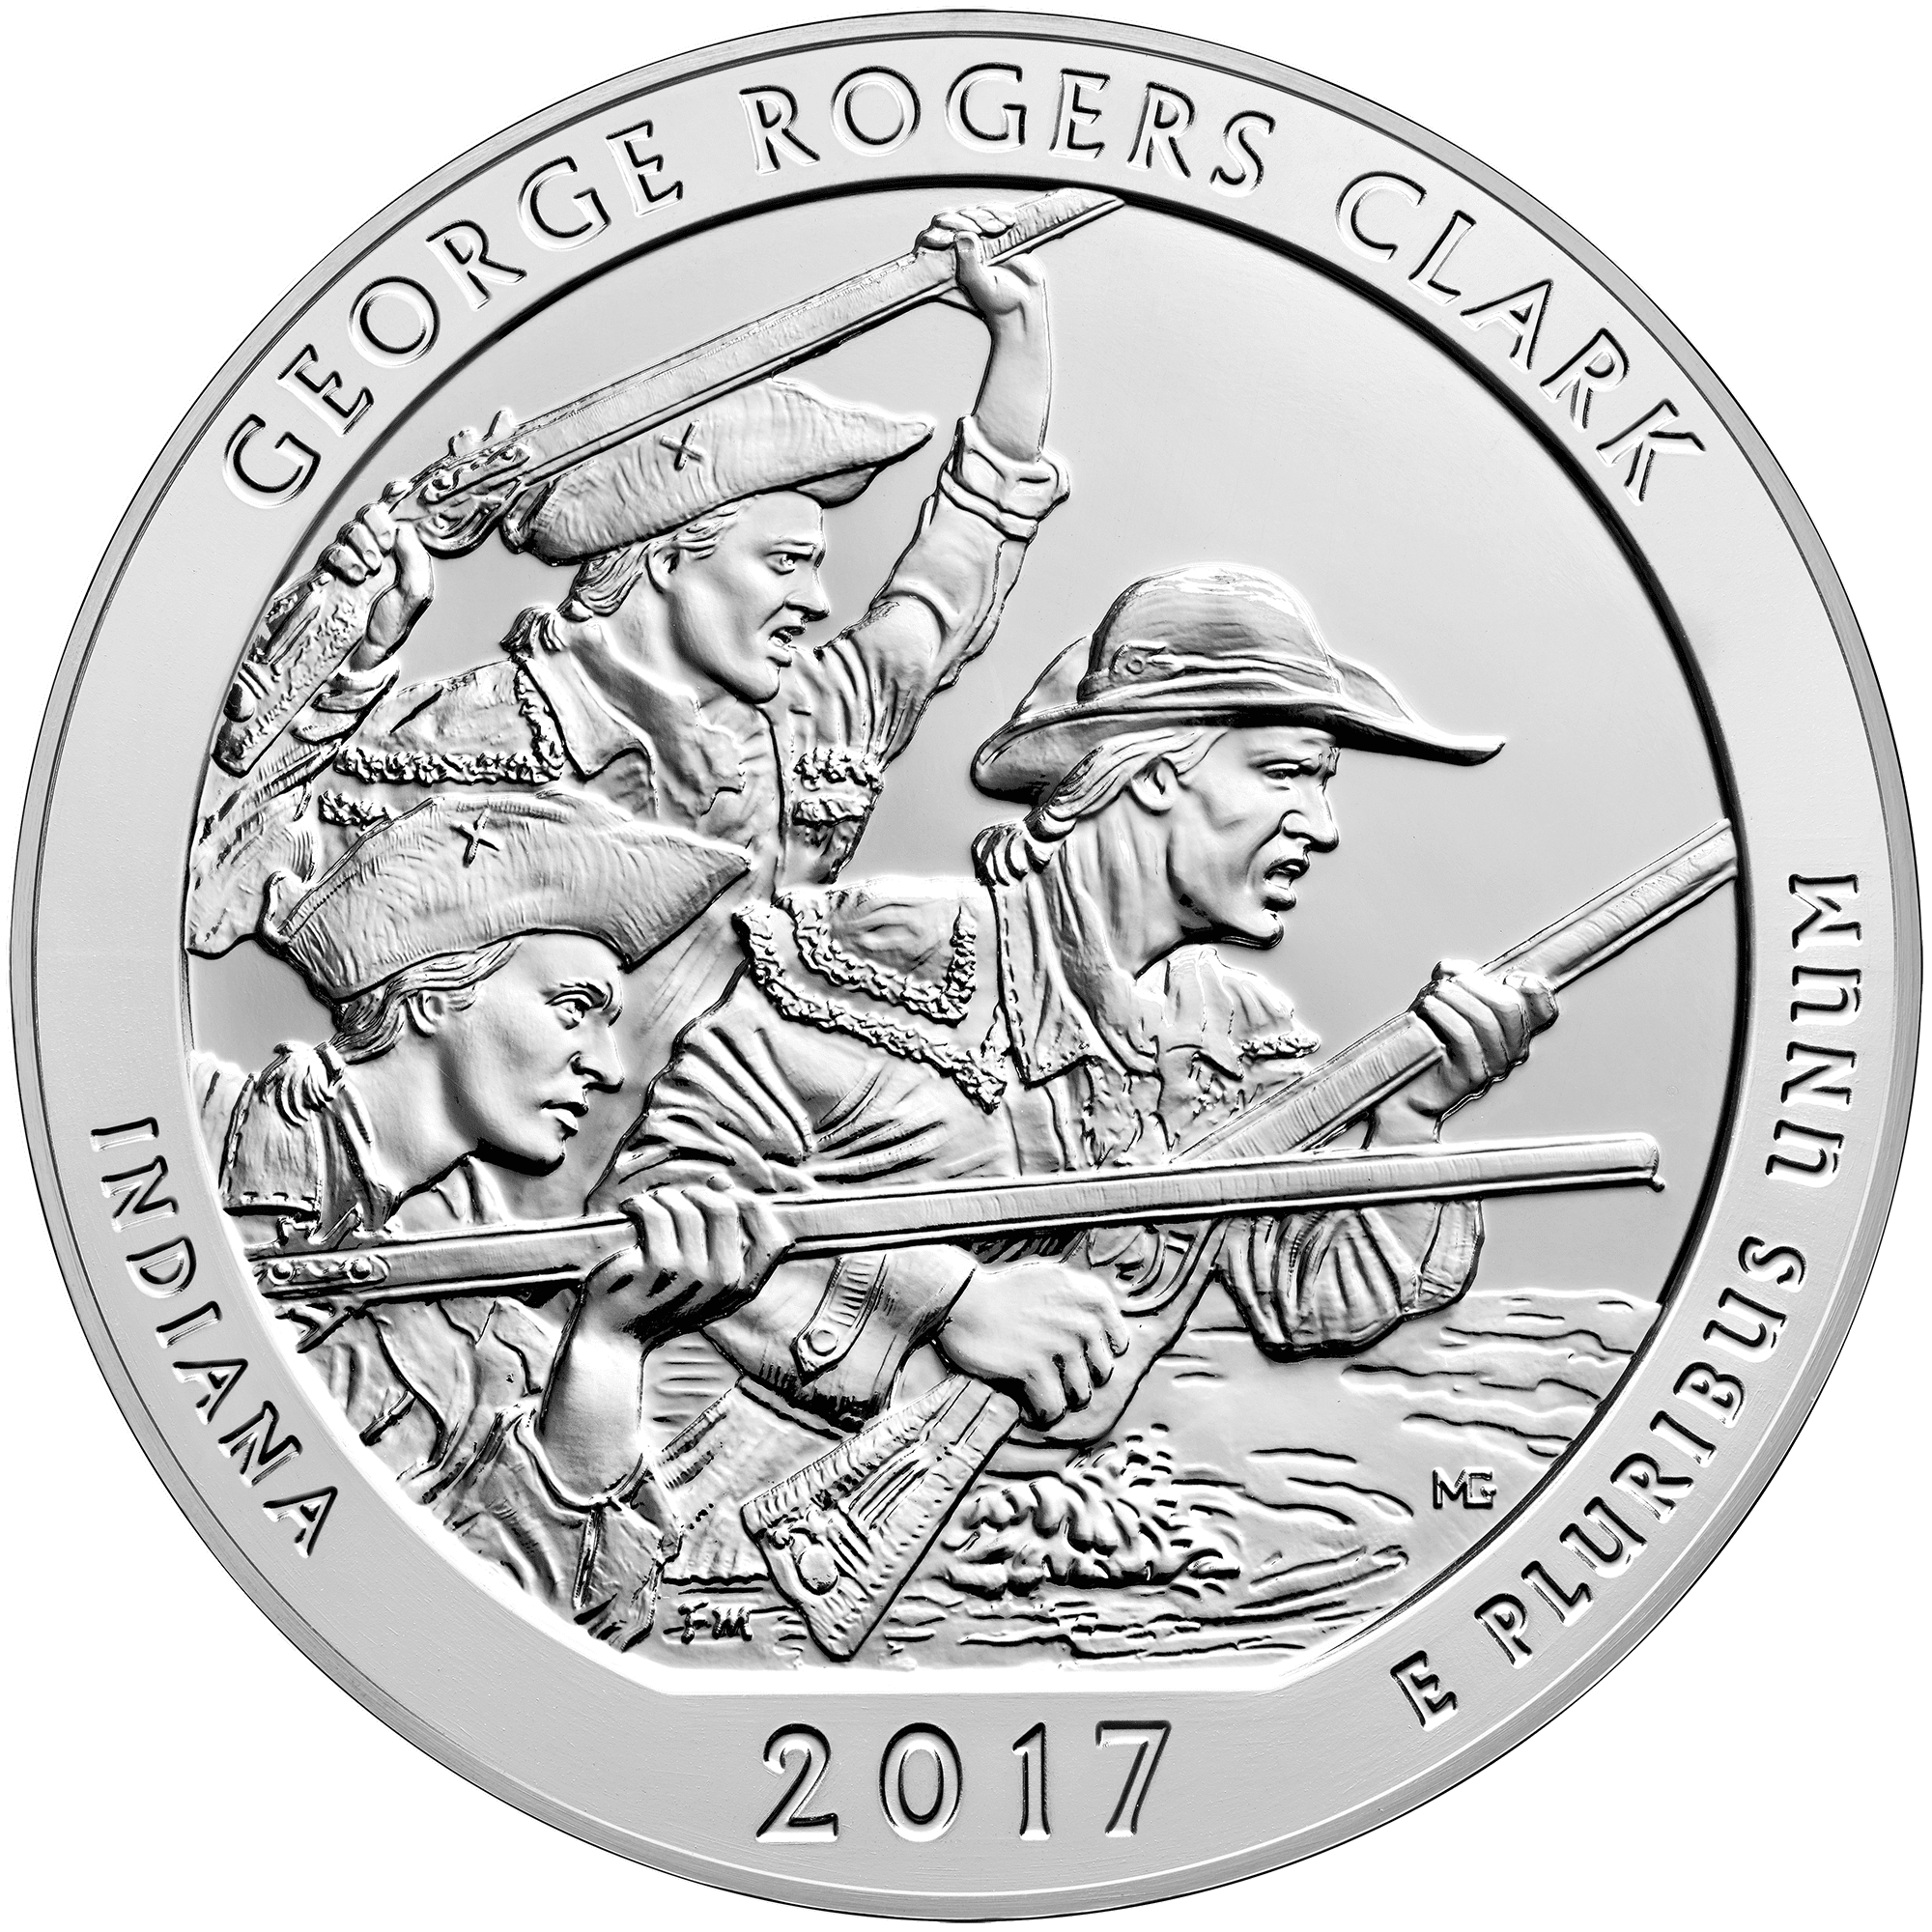 ATB Silver – George Rogers Clark Front